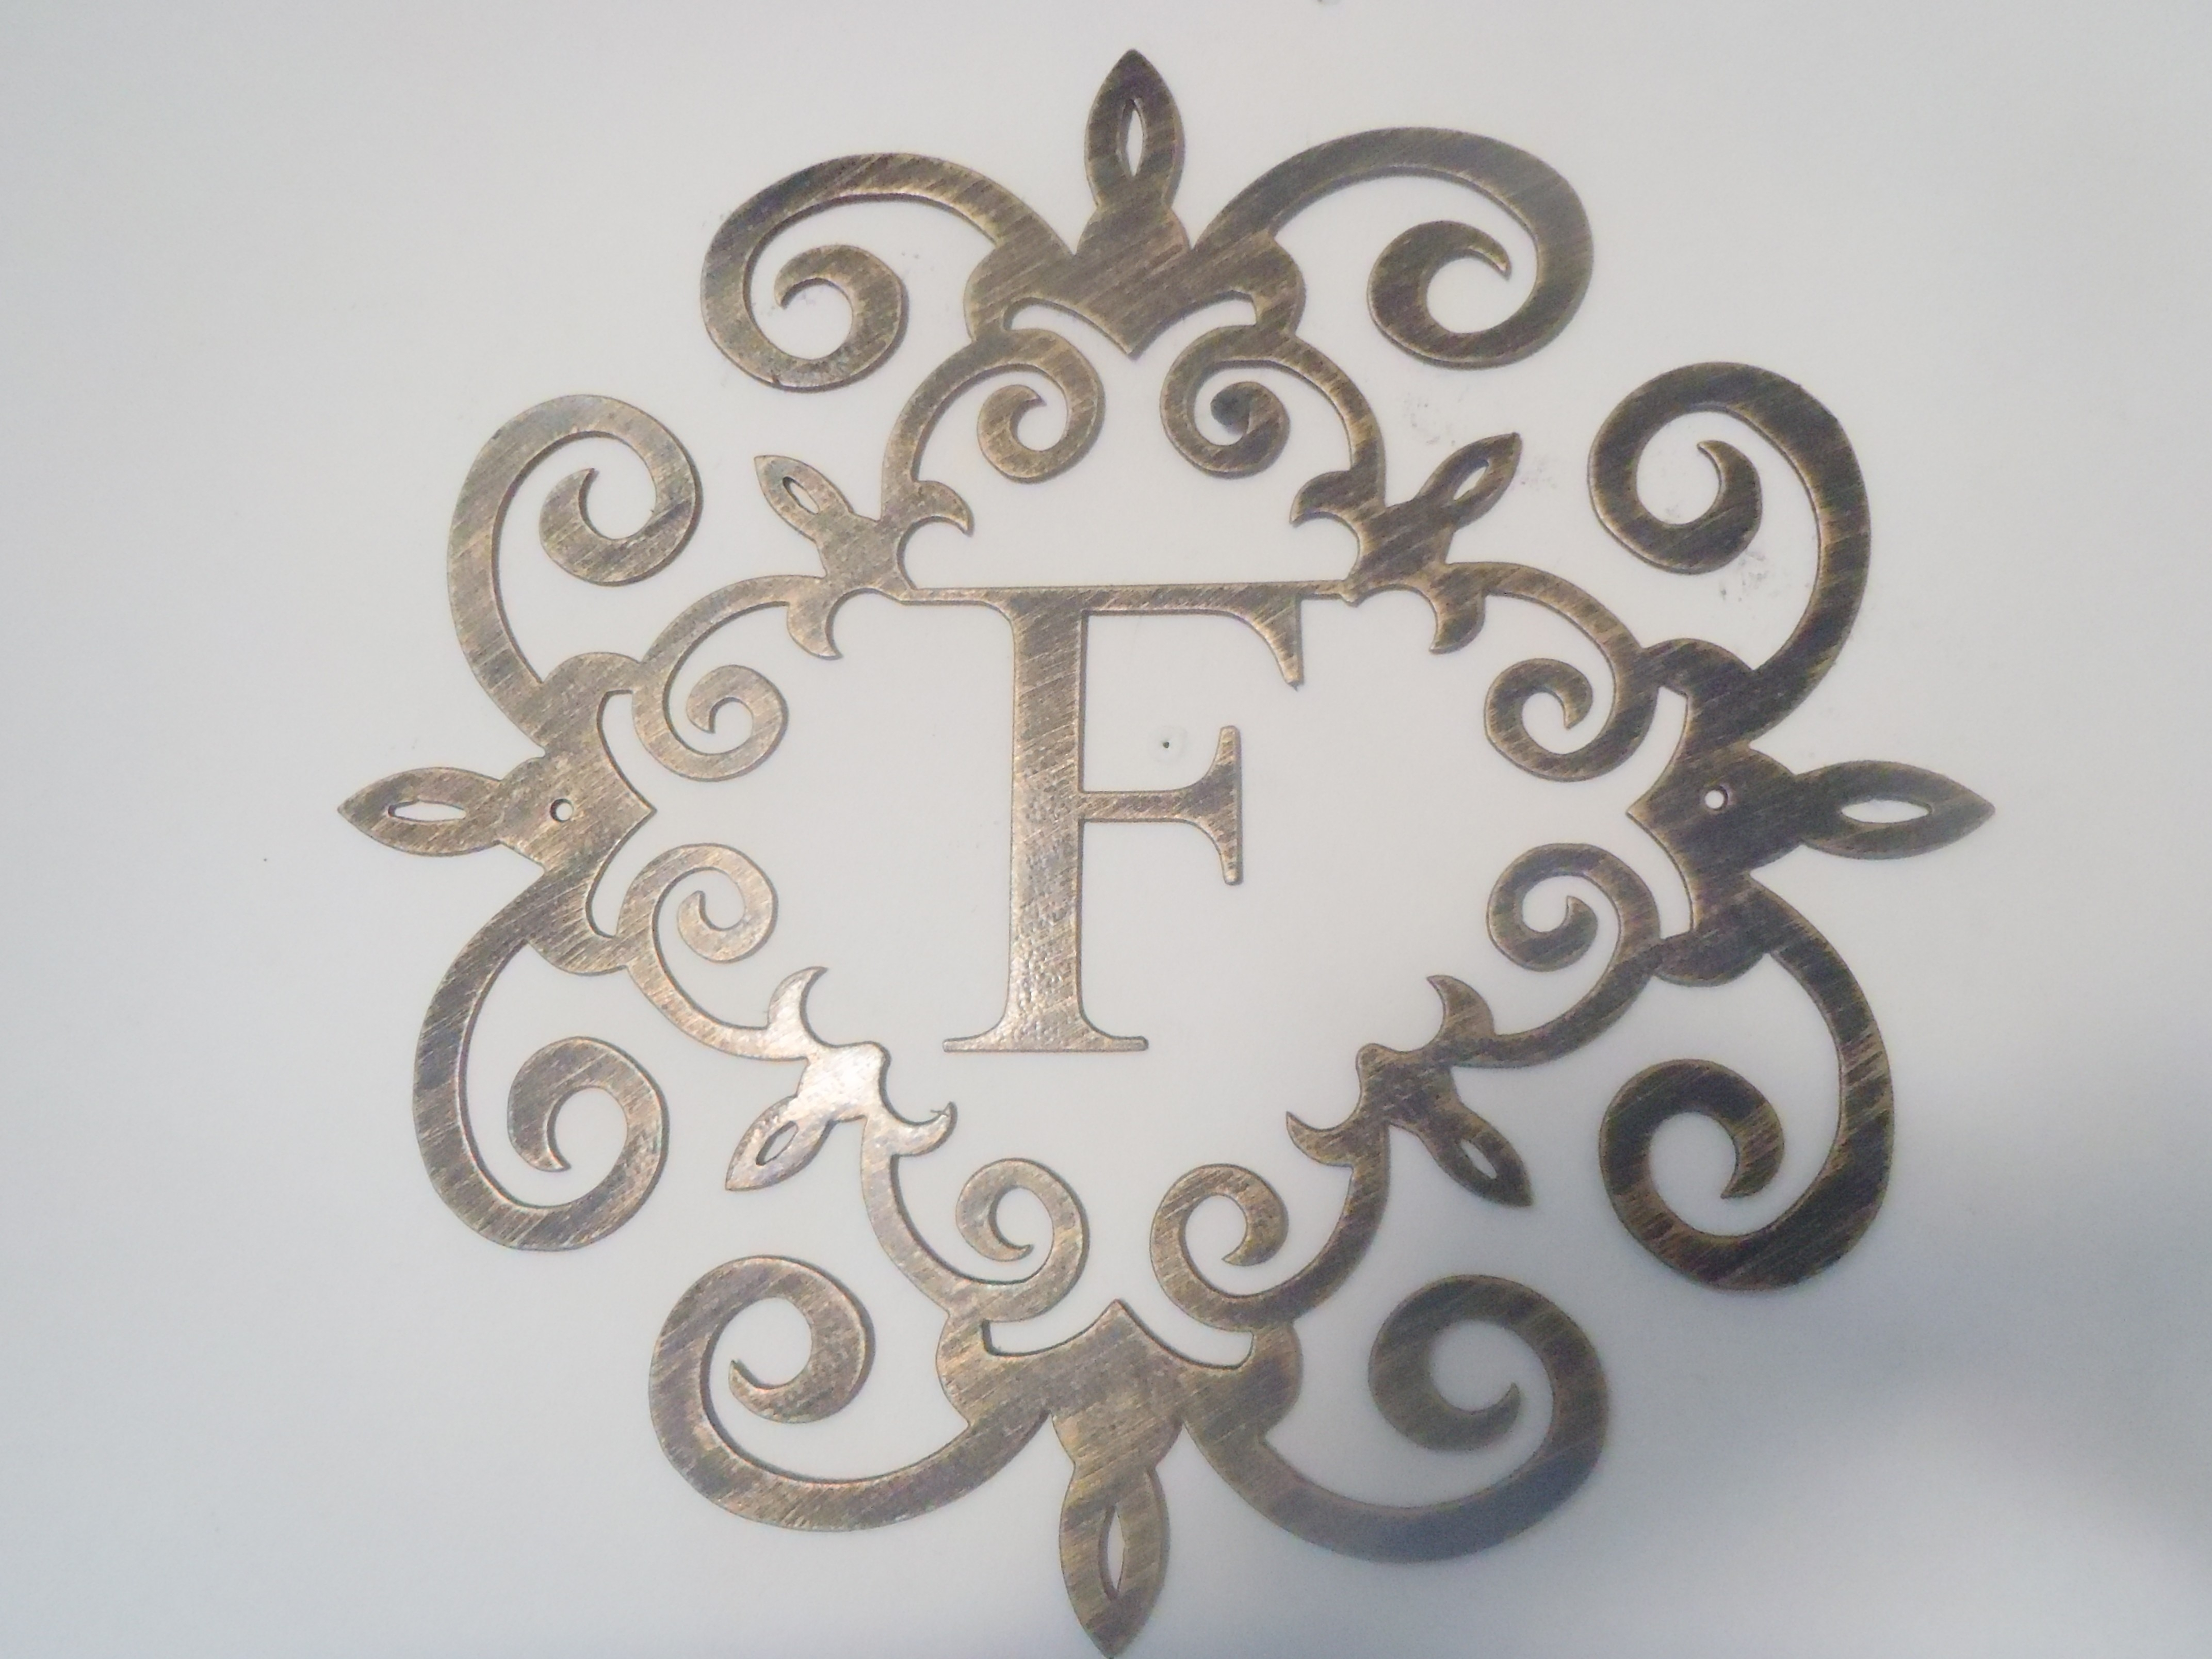 Family Initial, Monogram Inside A Metal Scroll With F Letter, 30 Regarding Most Current Metal Letter Wall Art (View 19 of 20)